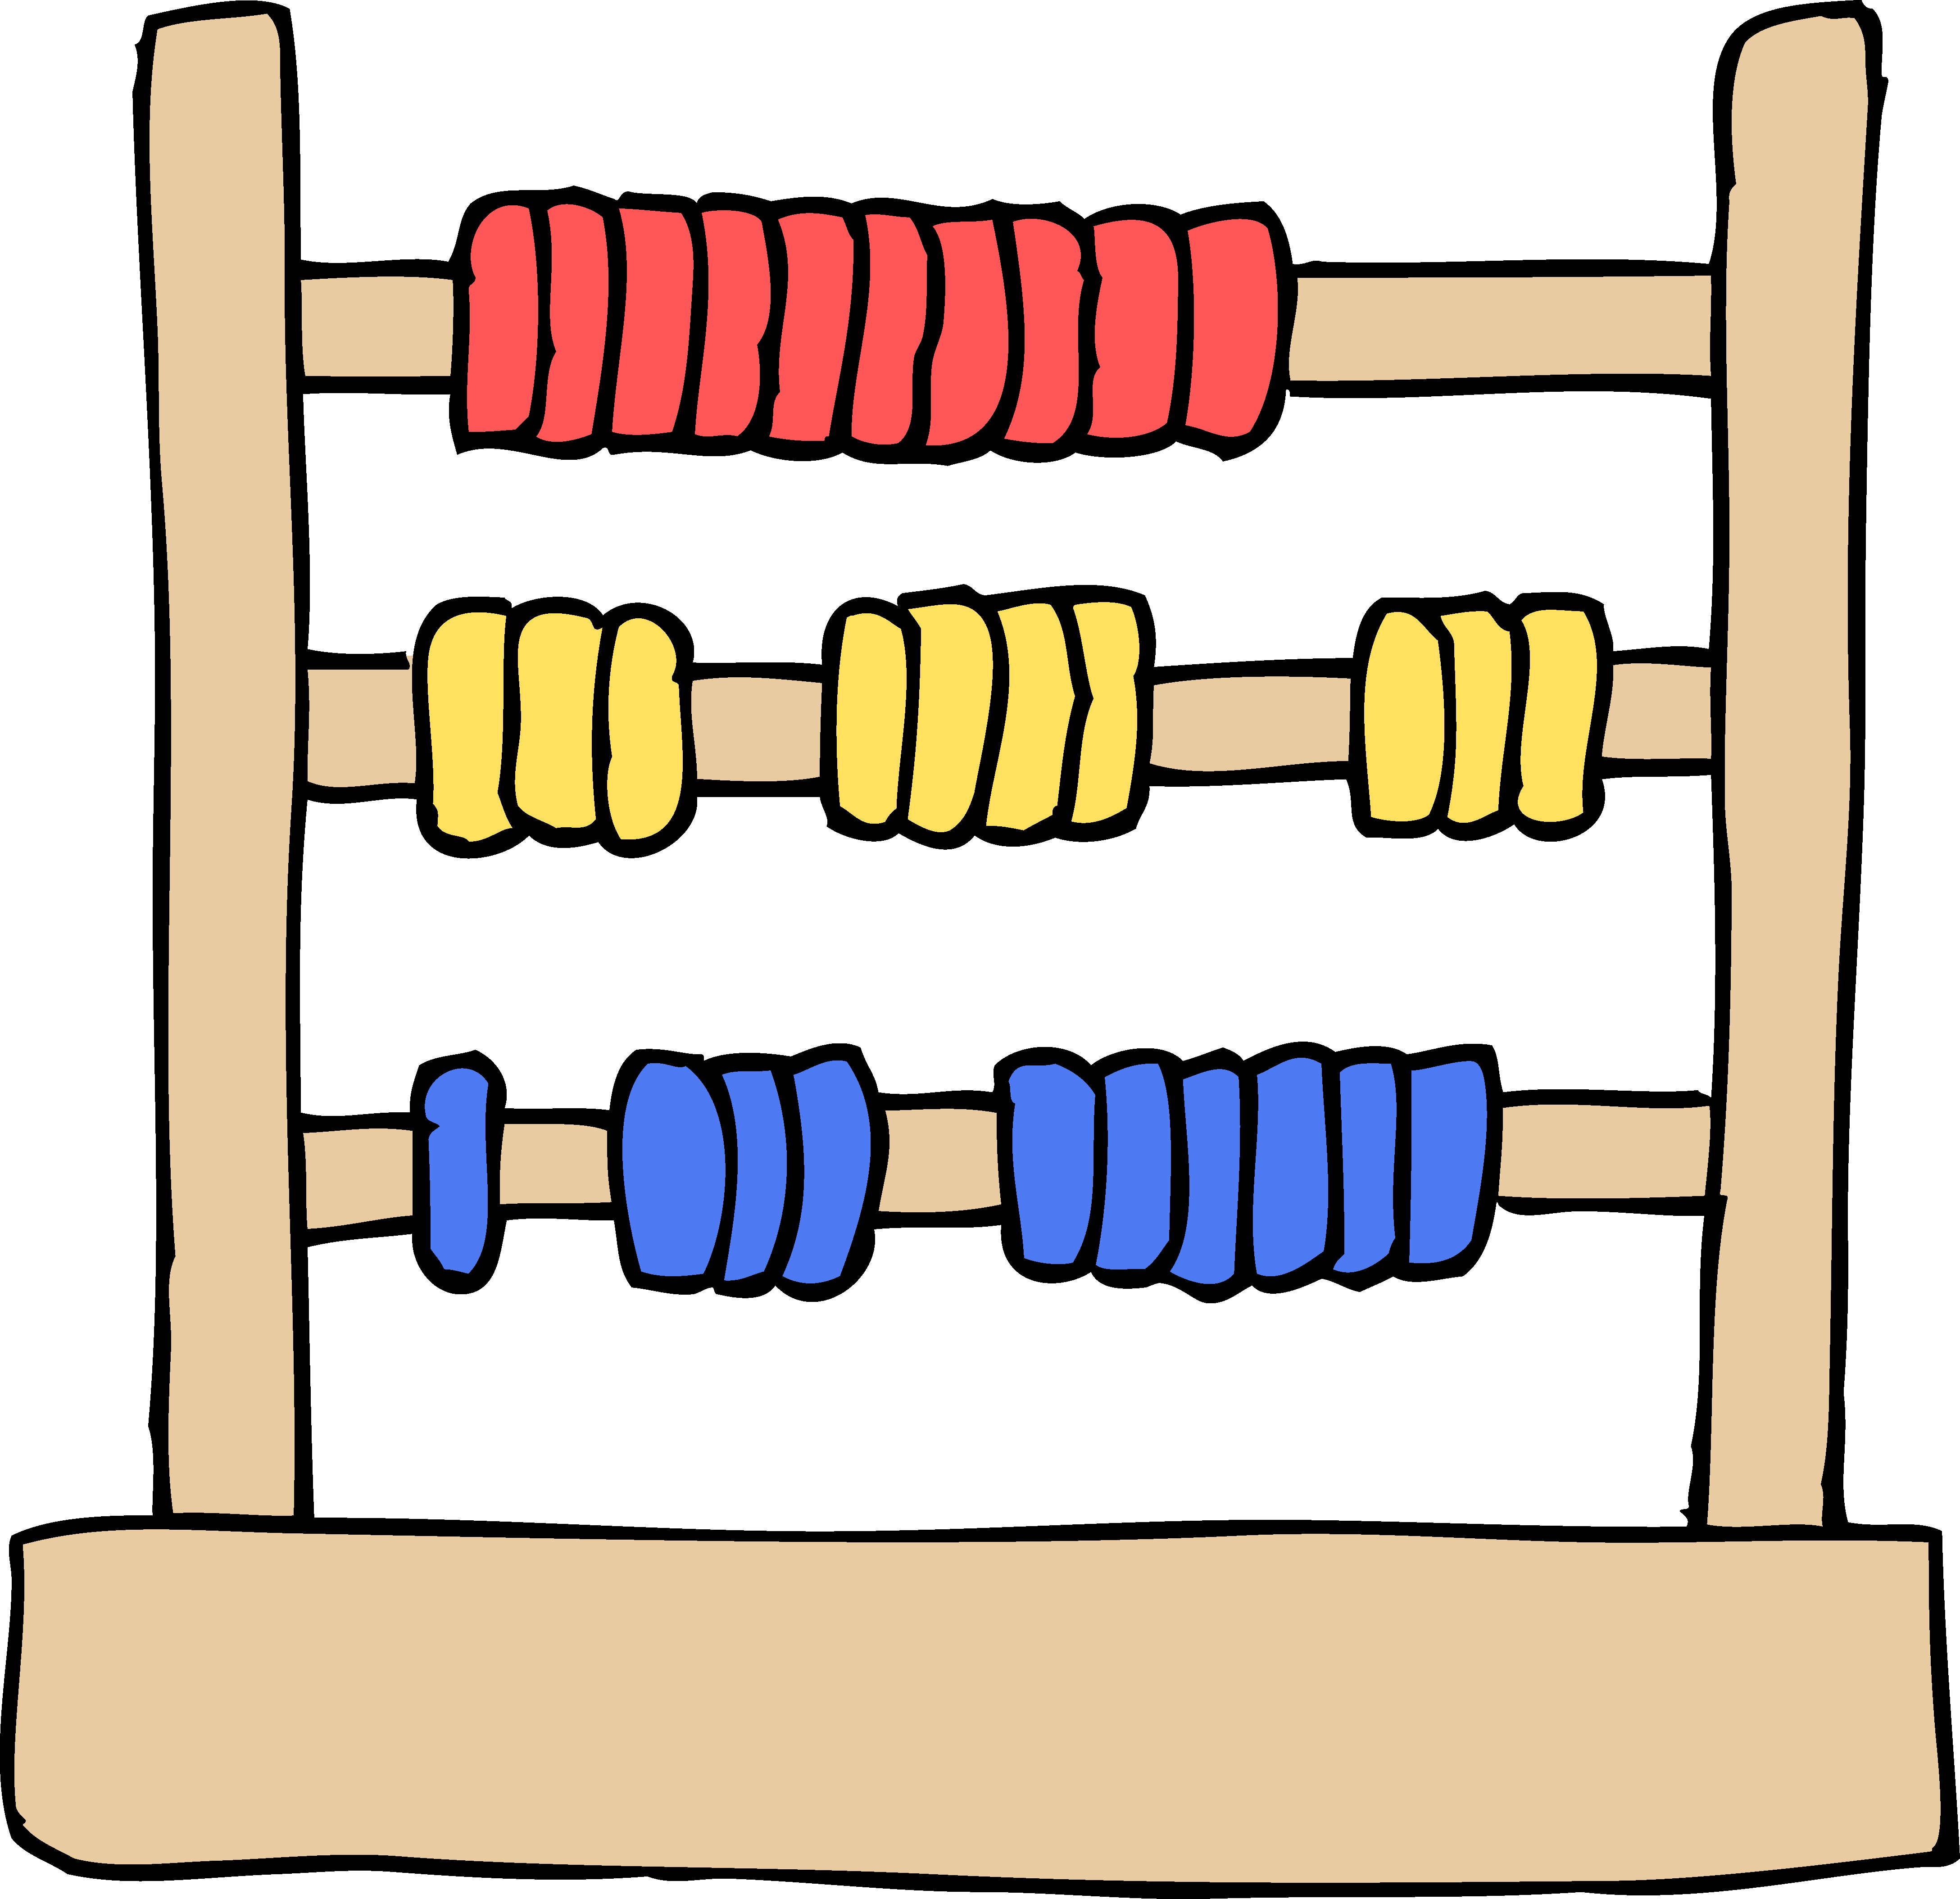 jpg freeuse download Yoyo clipart real. Kids abacus toy free